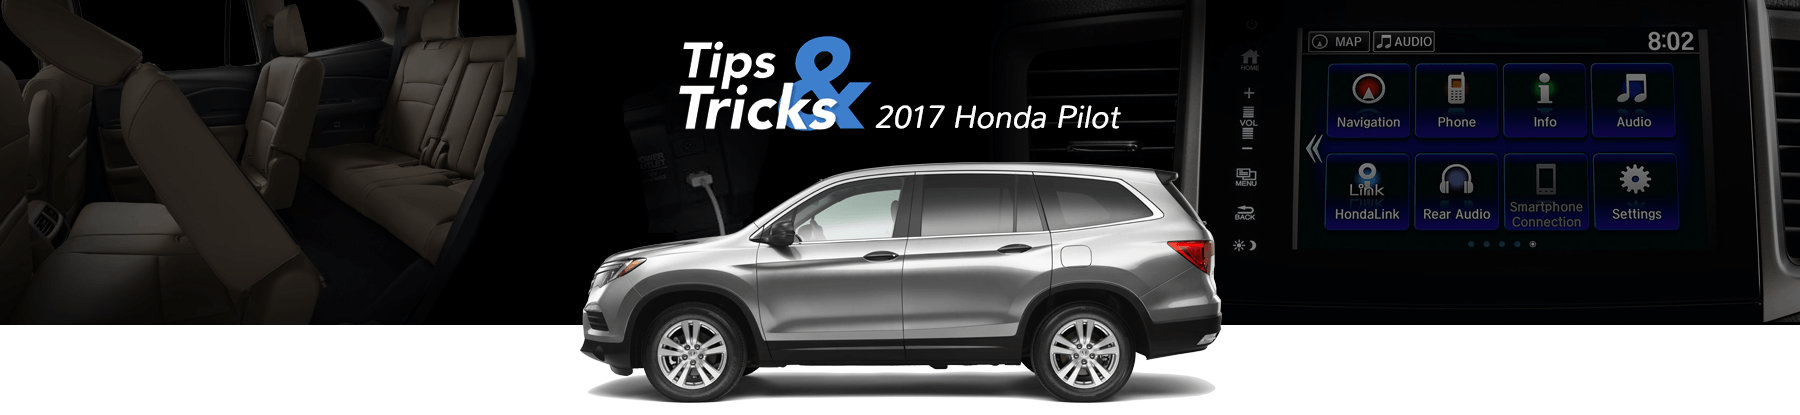 2017 Honda Pilot Tips & Tricks Banner